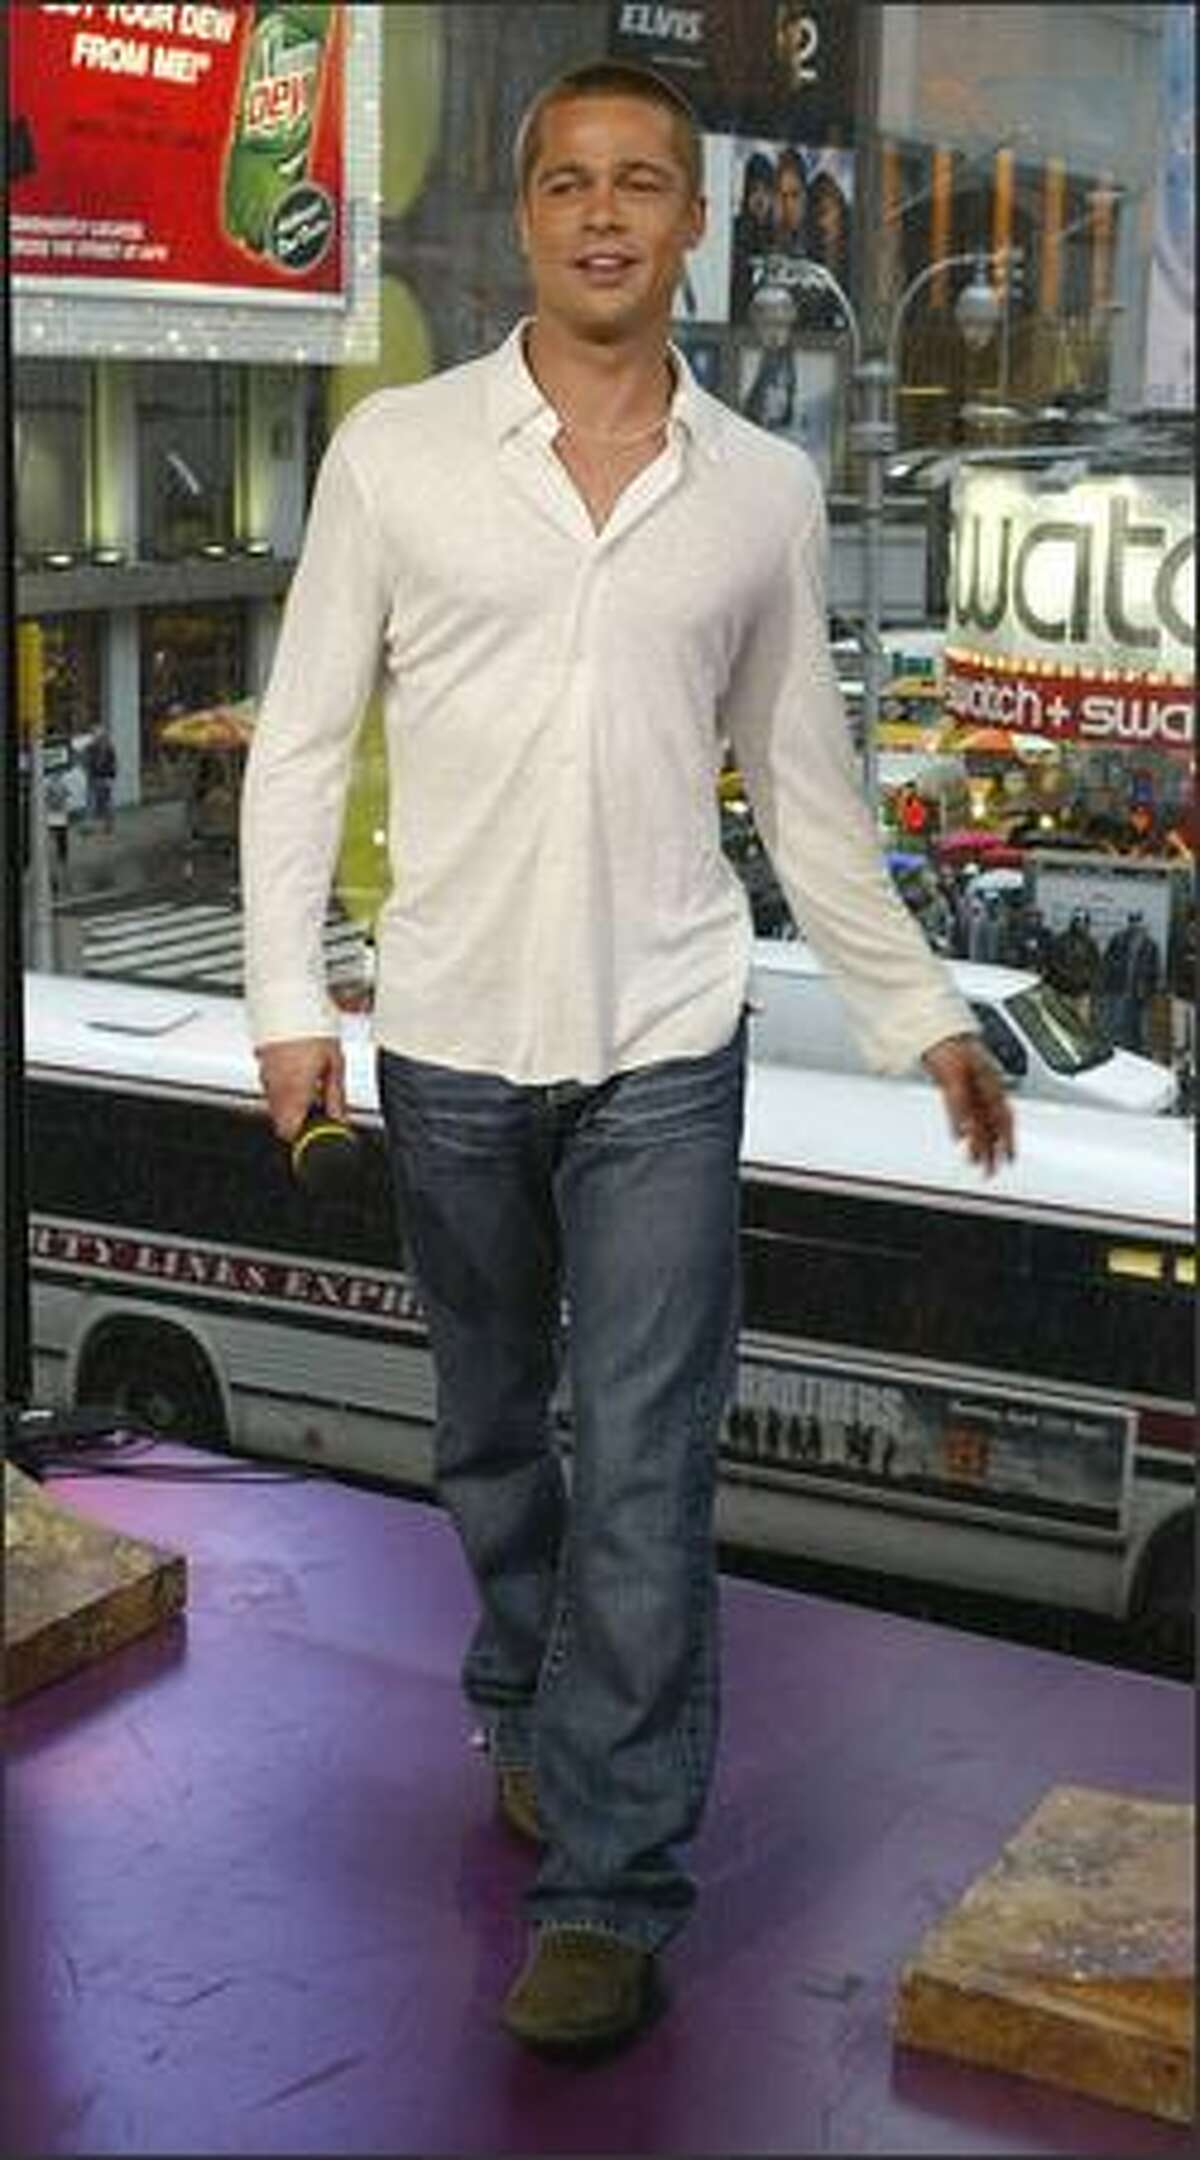 Brad Pitt attends MTV's TRL for the first time at the MTV Times Square Studio in New York, May 3, 2004.